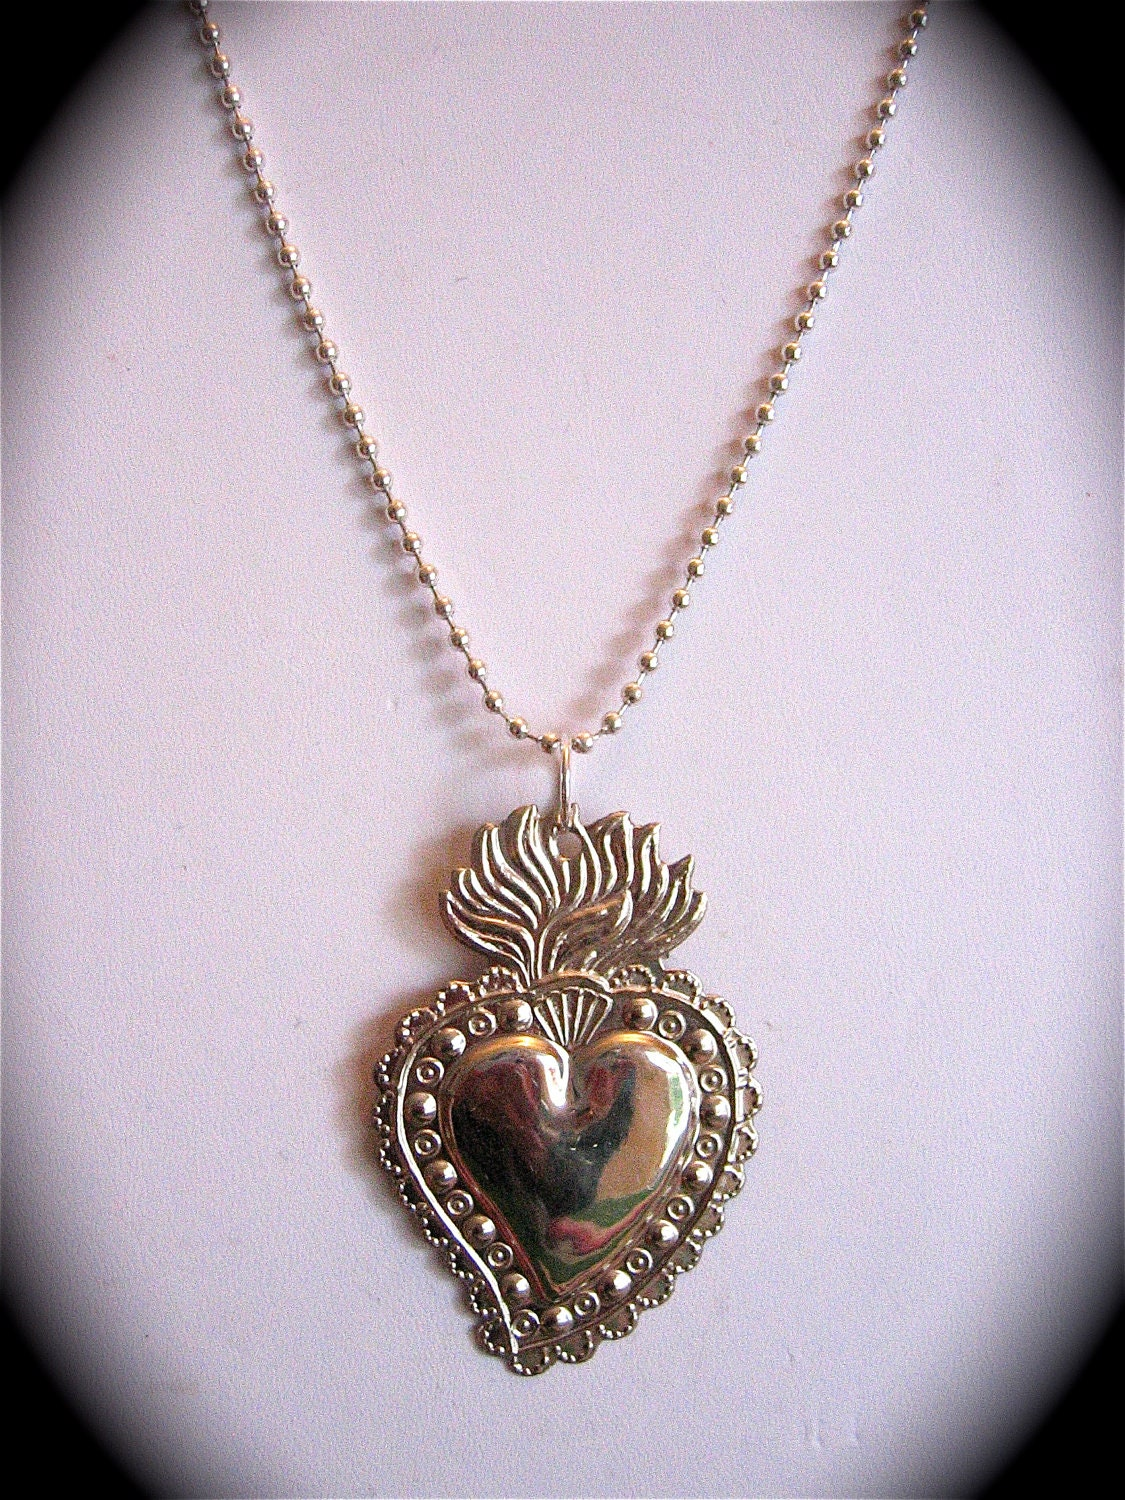 Intricate 2 5 Sacred Heart Milagro Pendant And 24